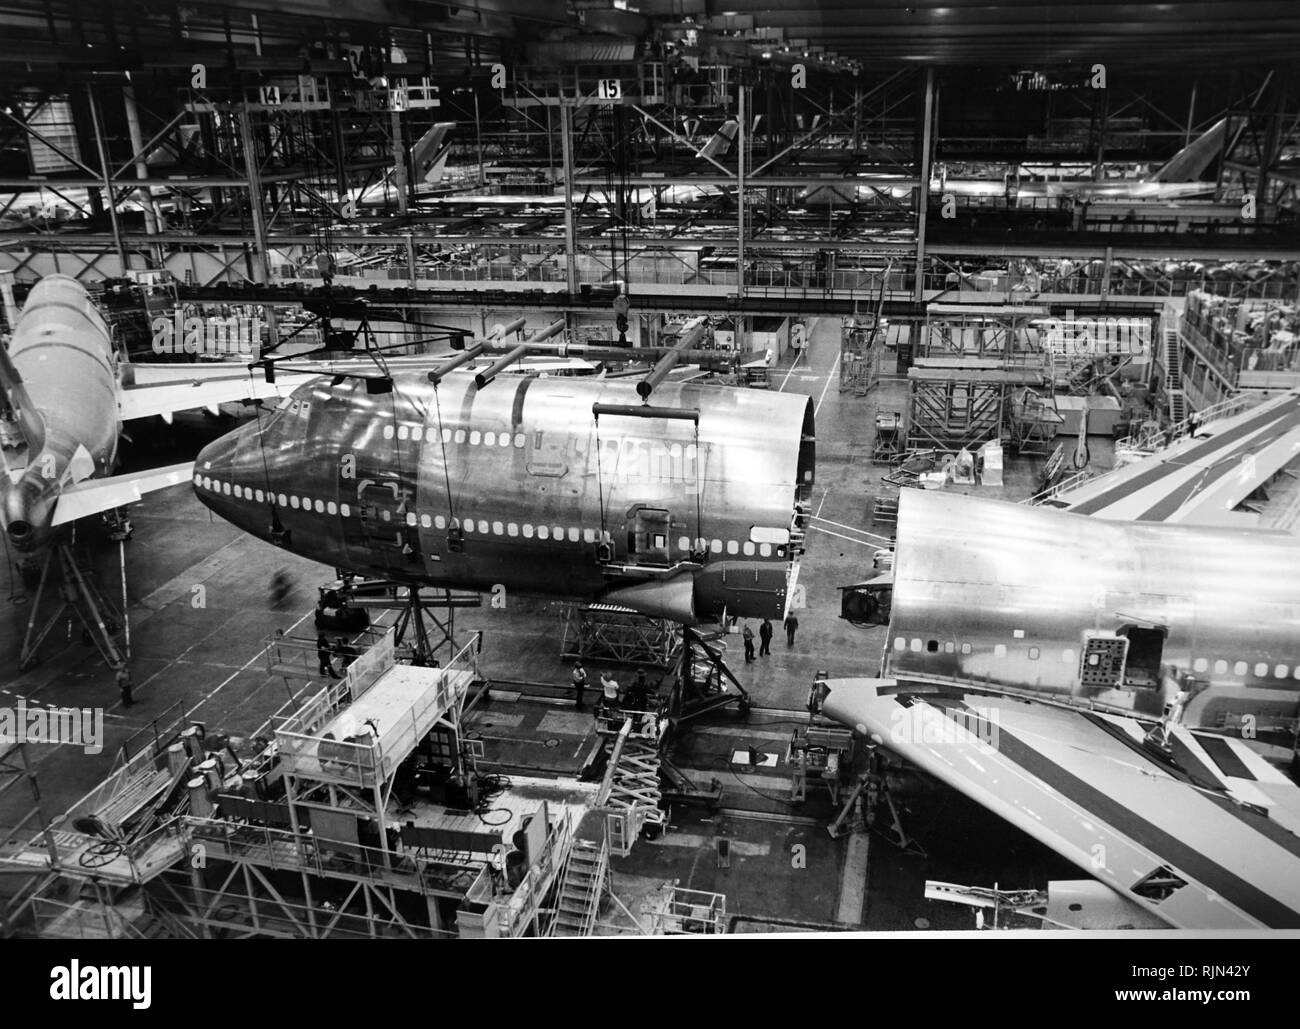 BOEING 747-400 aircraft: Forward body being lowered on 34-ton crane into position for final body joining. Boeing Commercial Airplane Group, Seattle. - Stock Image